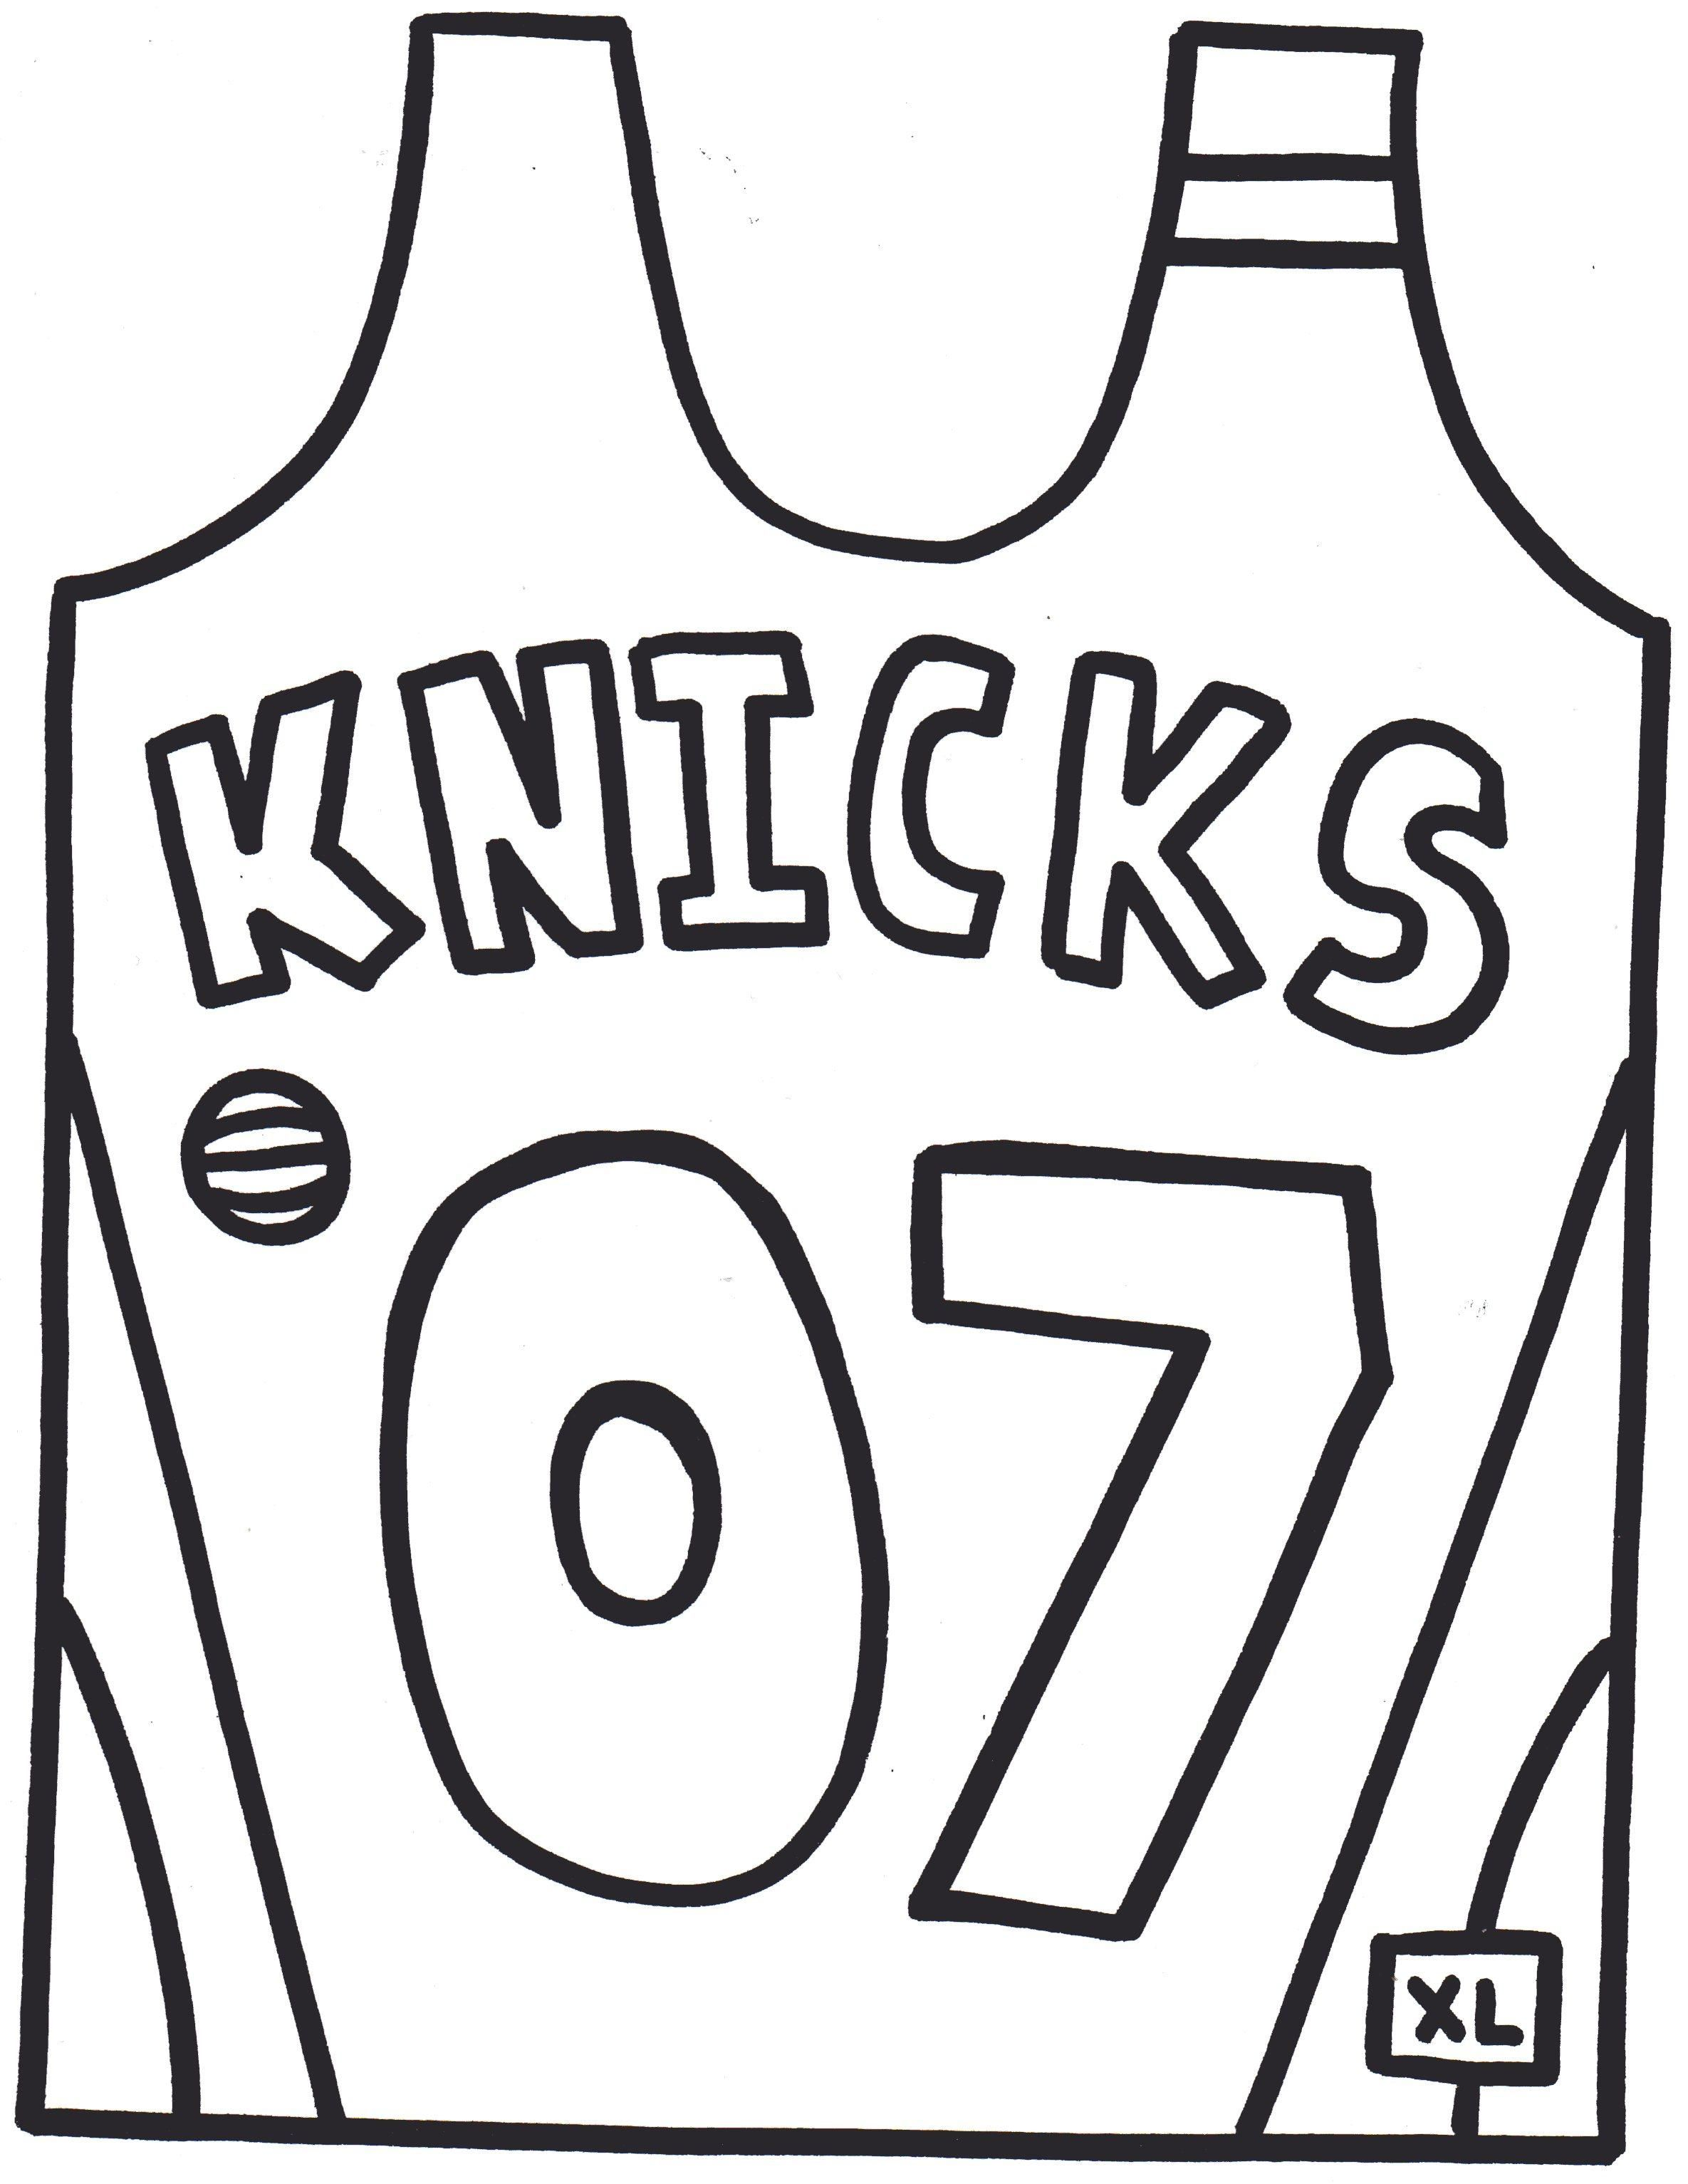 Nfl Coloring Pages Pdf : Football coloring pages nfl azembrace sports jersey